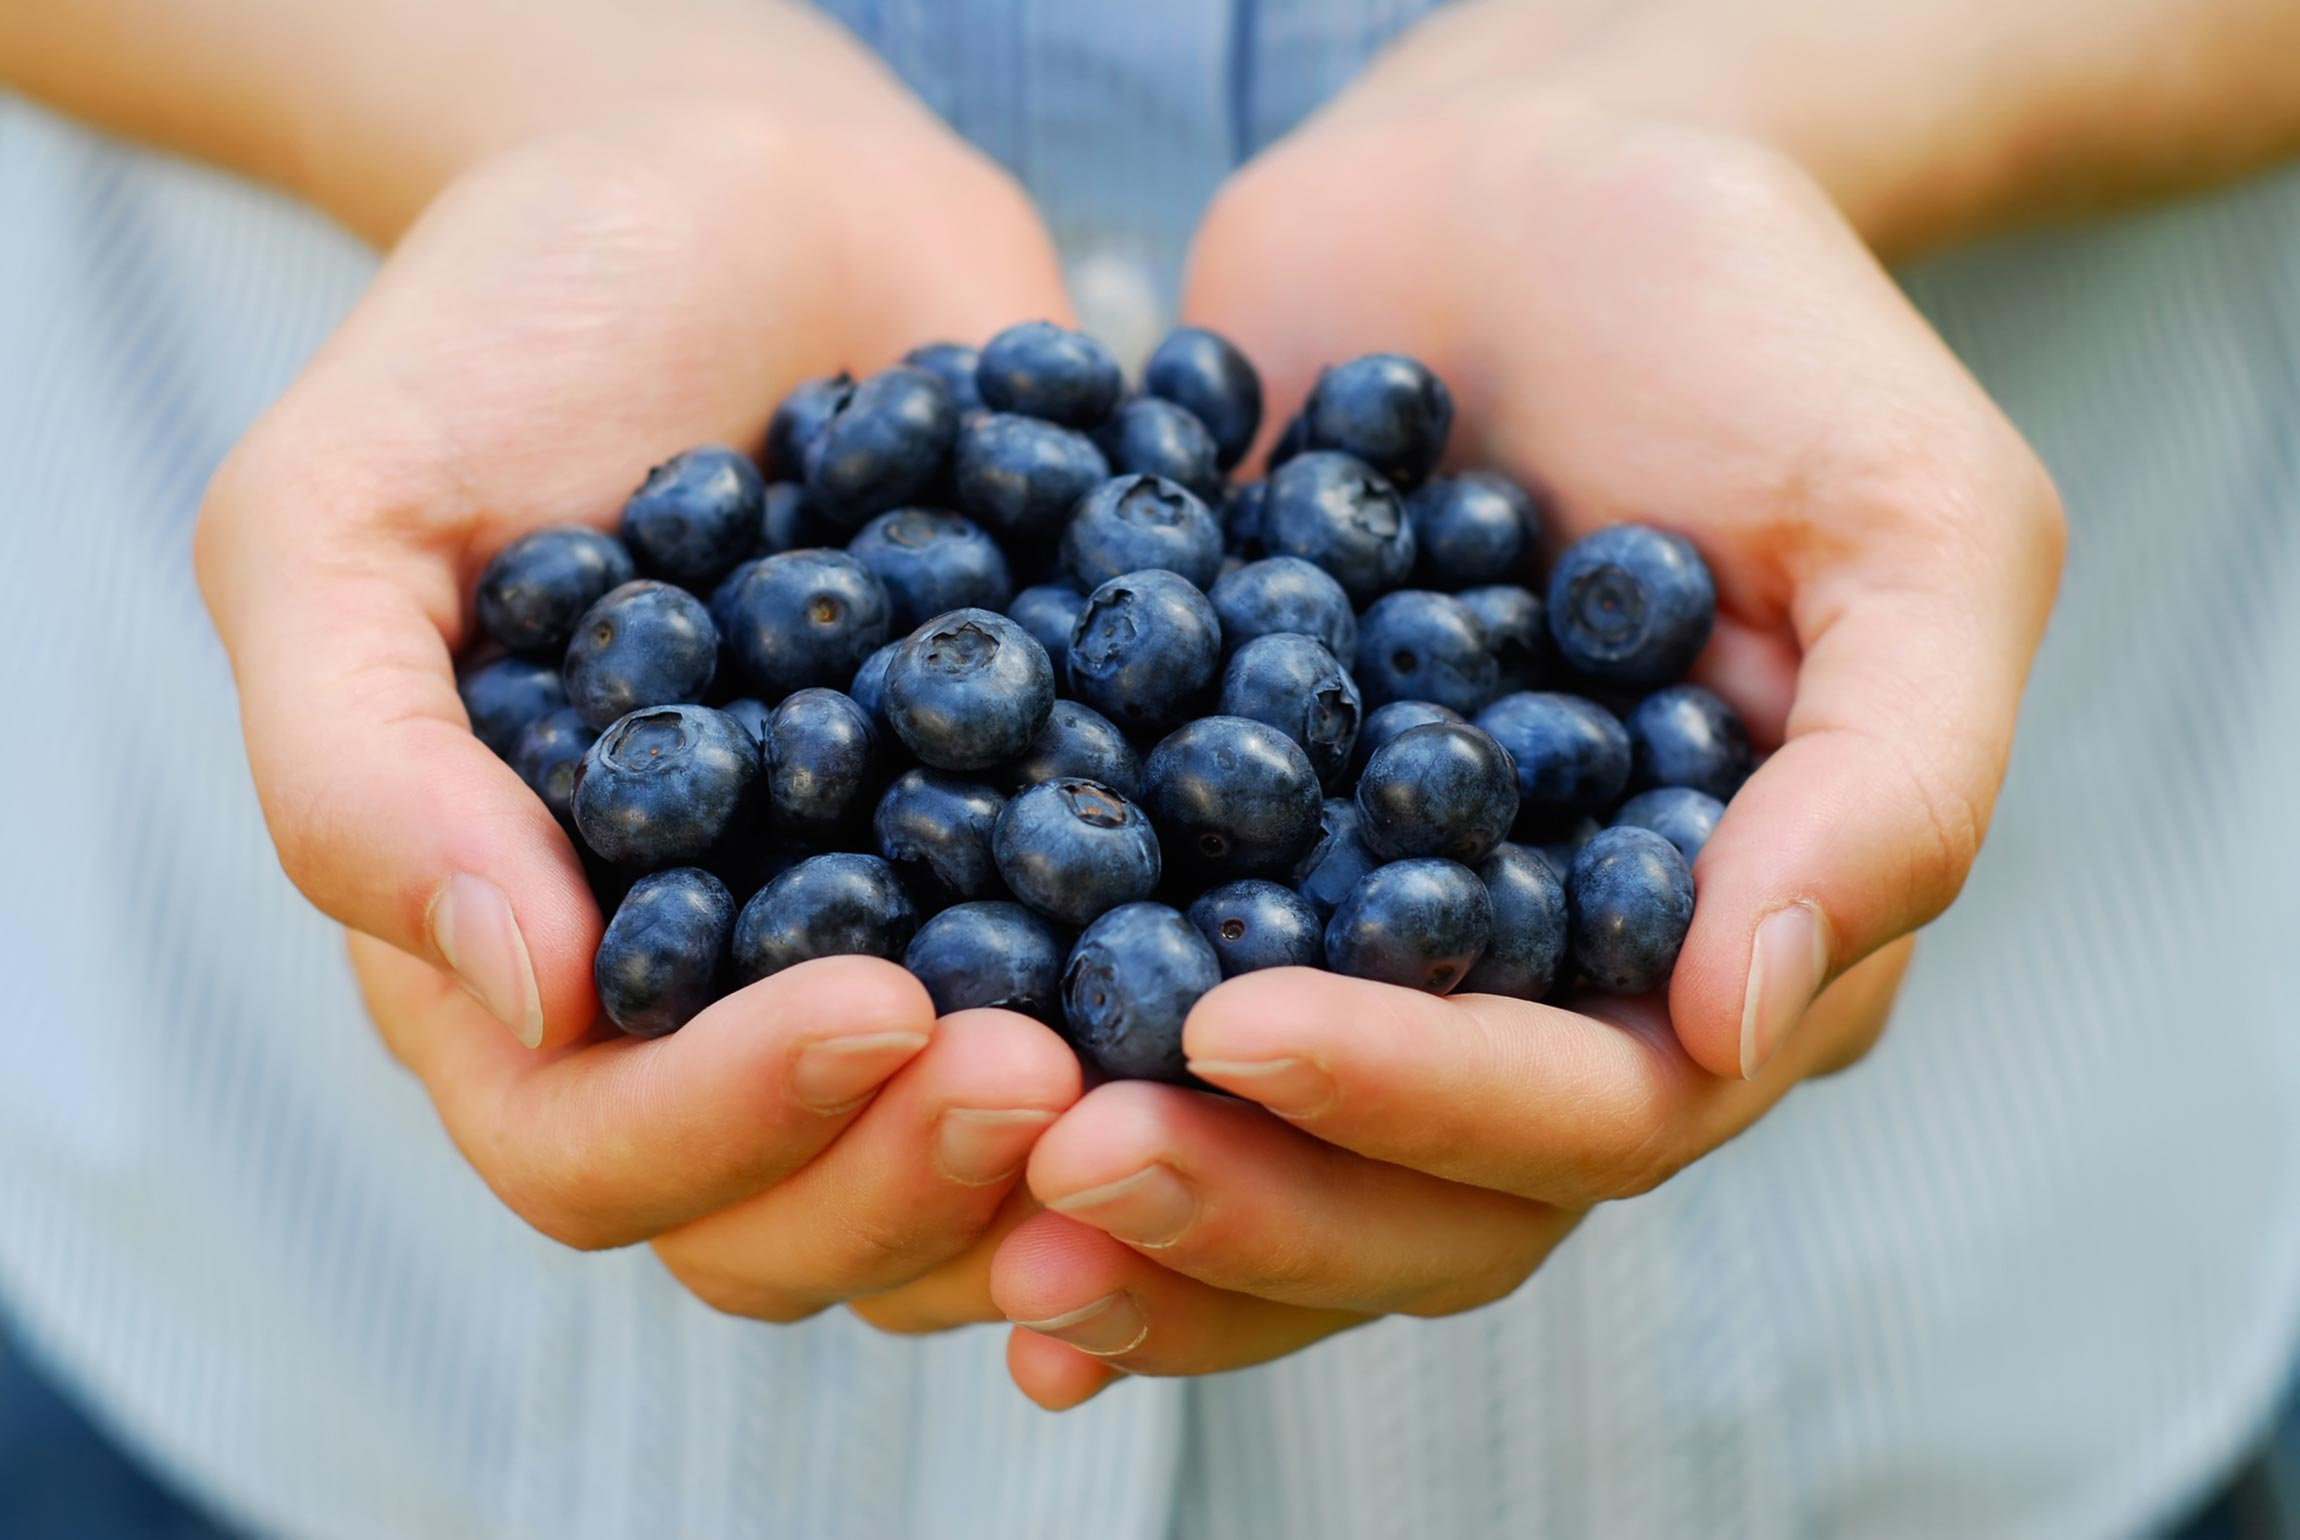 closeup of a hands holding blueberries